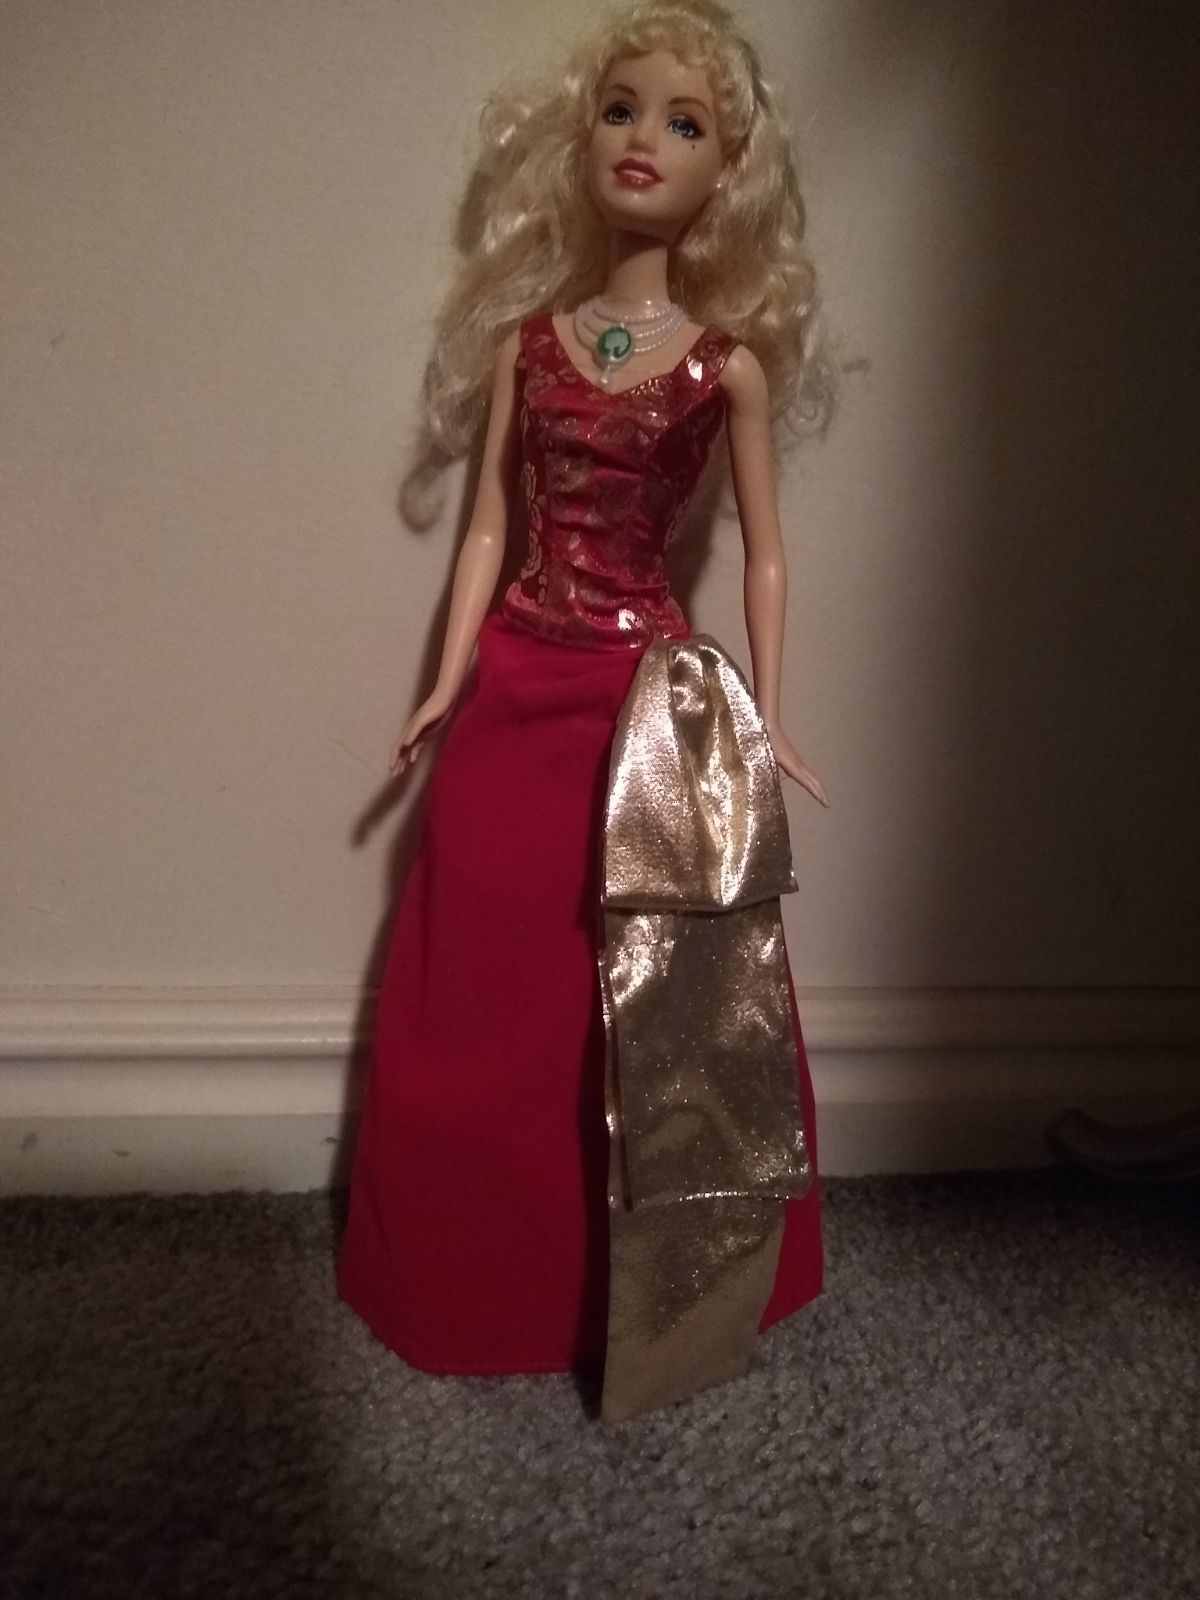 Barbie in a Christmas Carol Doll lightly played with